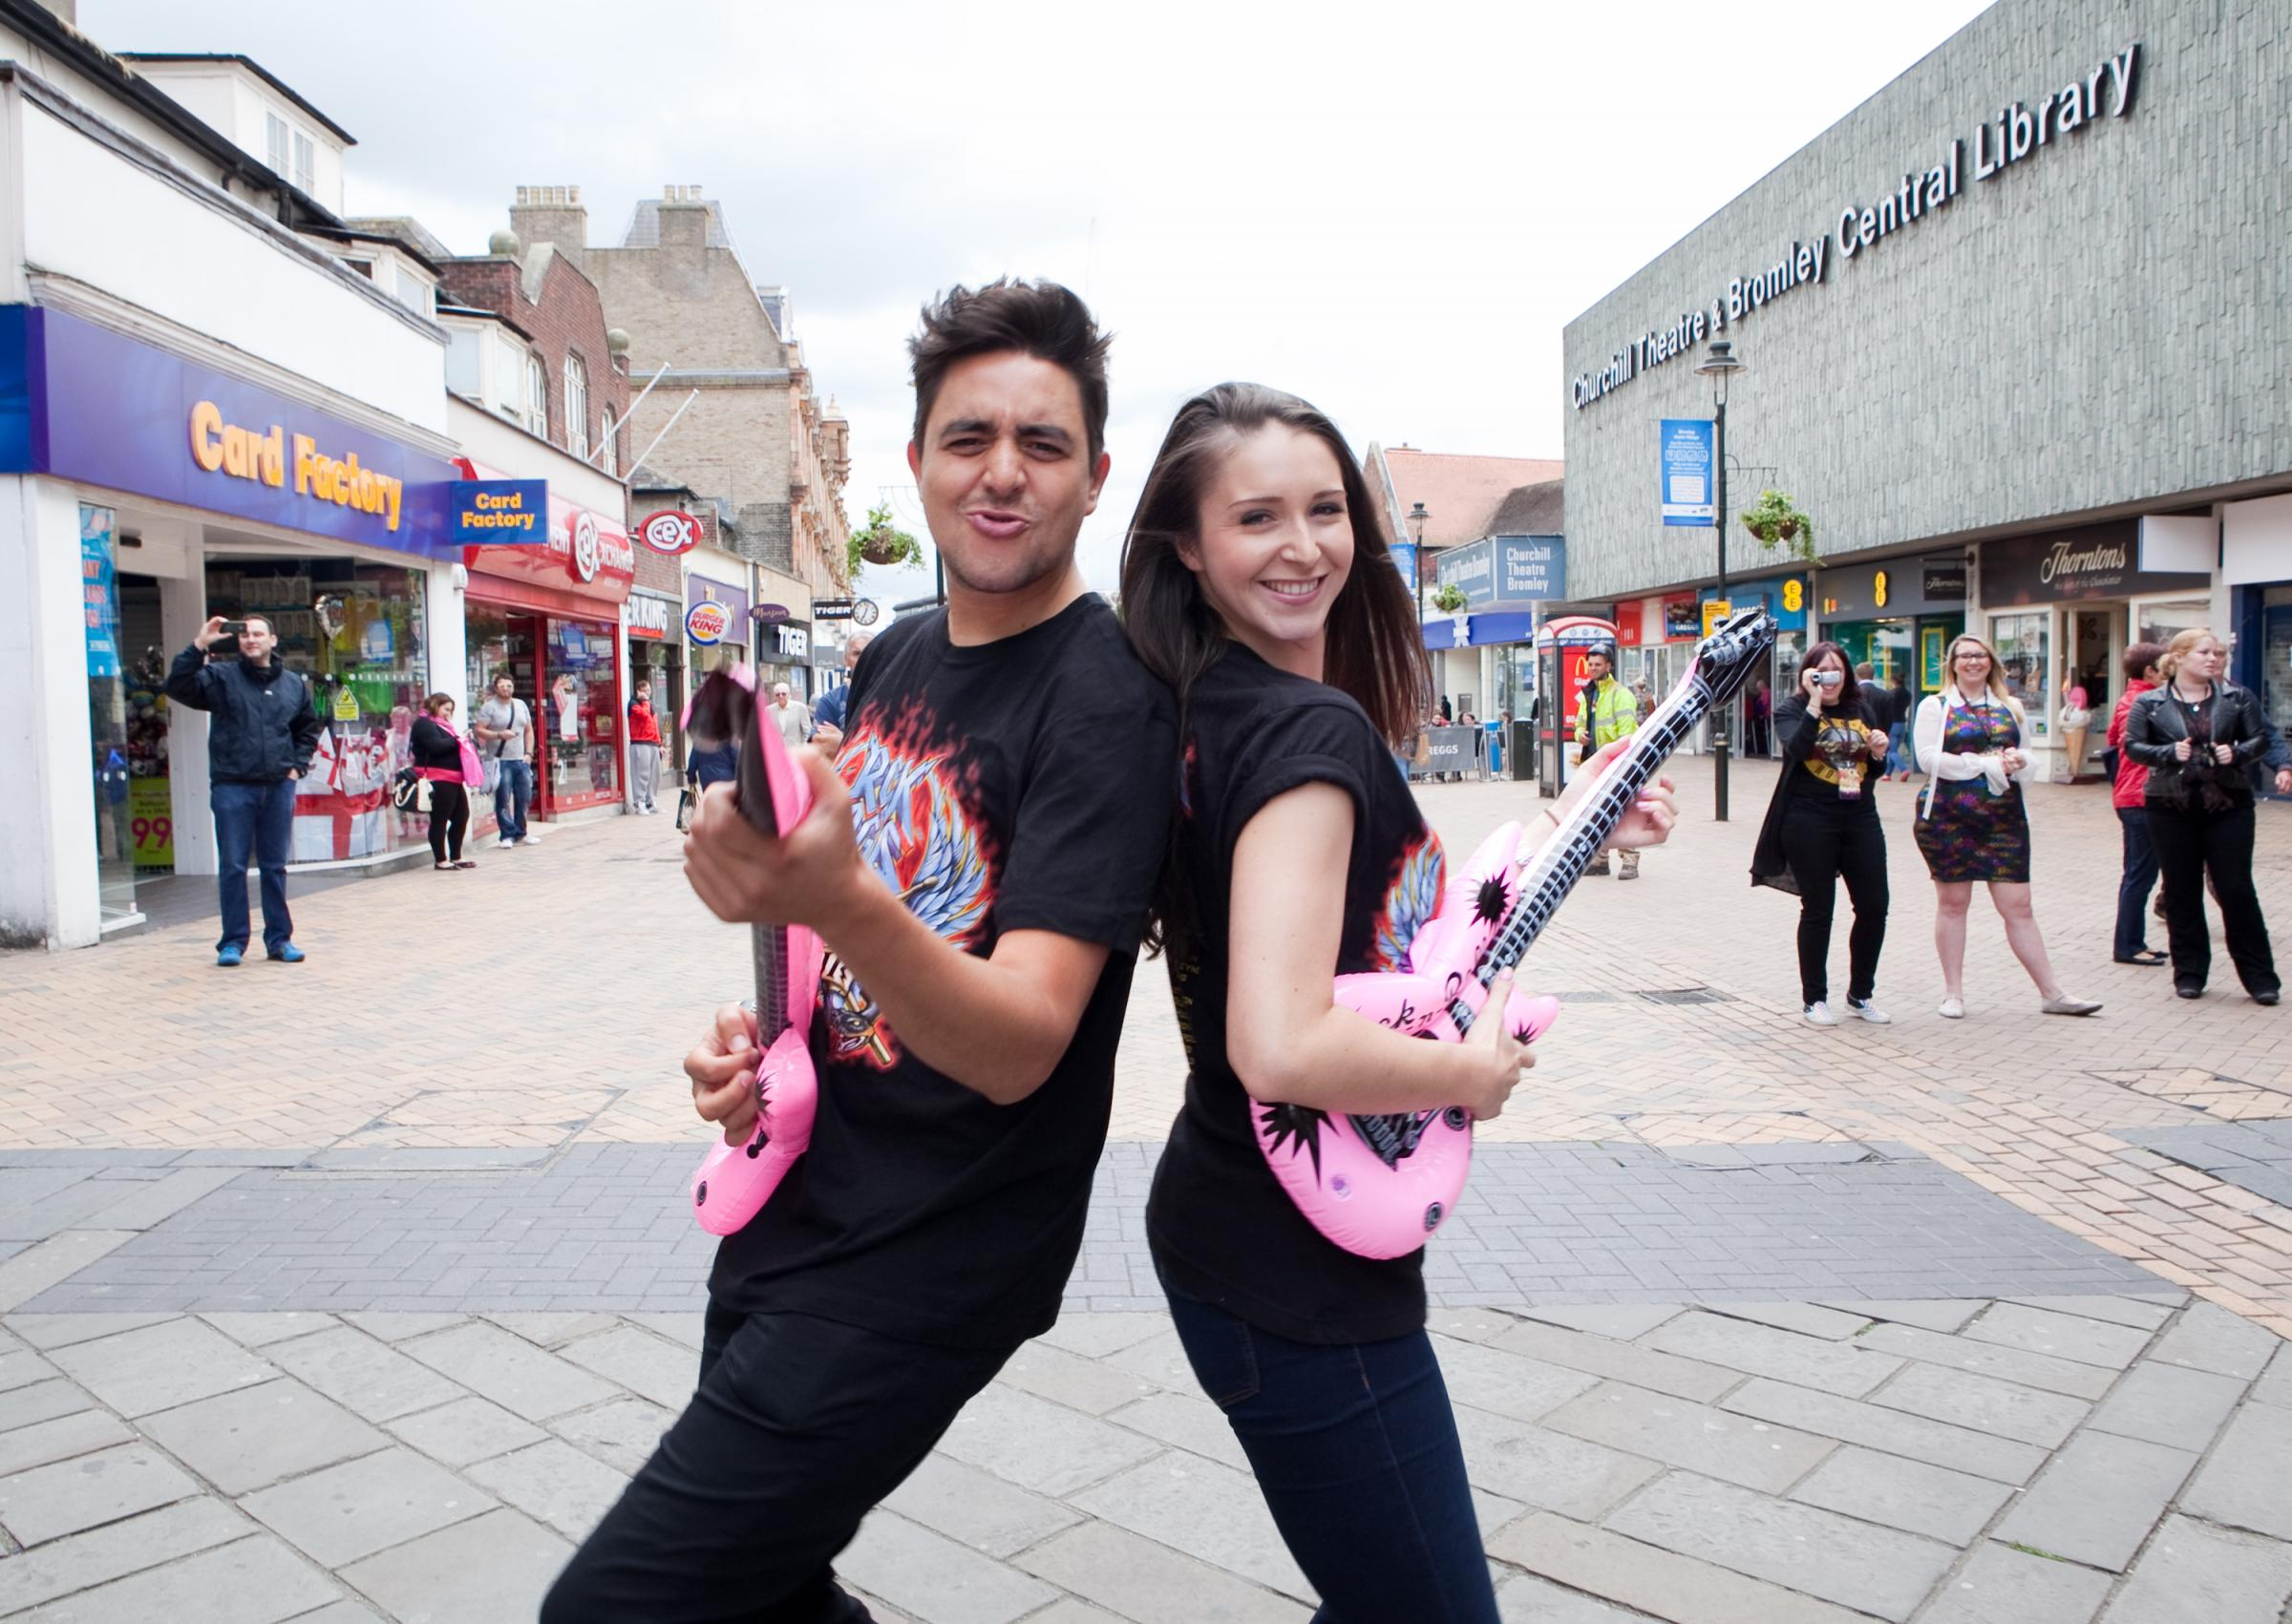 VIDEO UPDATE: Rock of Ages stars perform flash mob in Bromley High Street